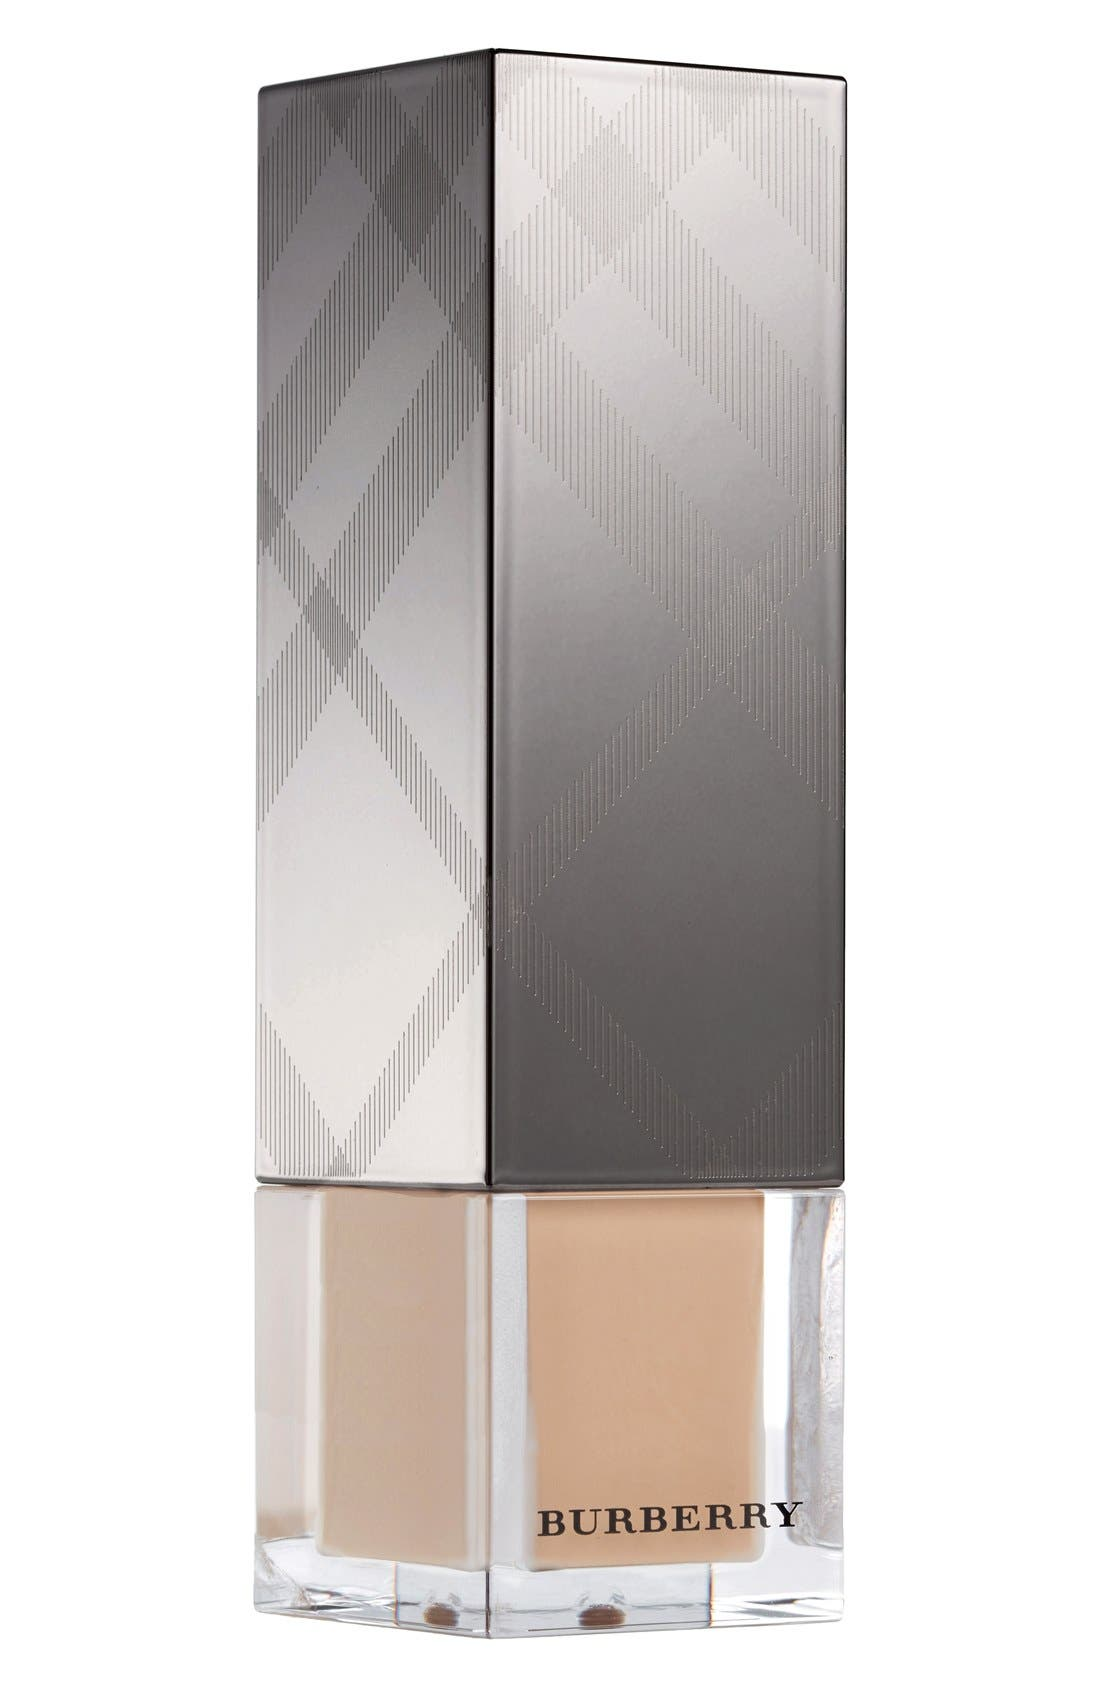 Burberry Beauty Fresh Glow Luminous Fluid Foundation